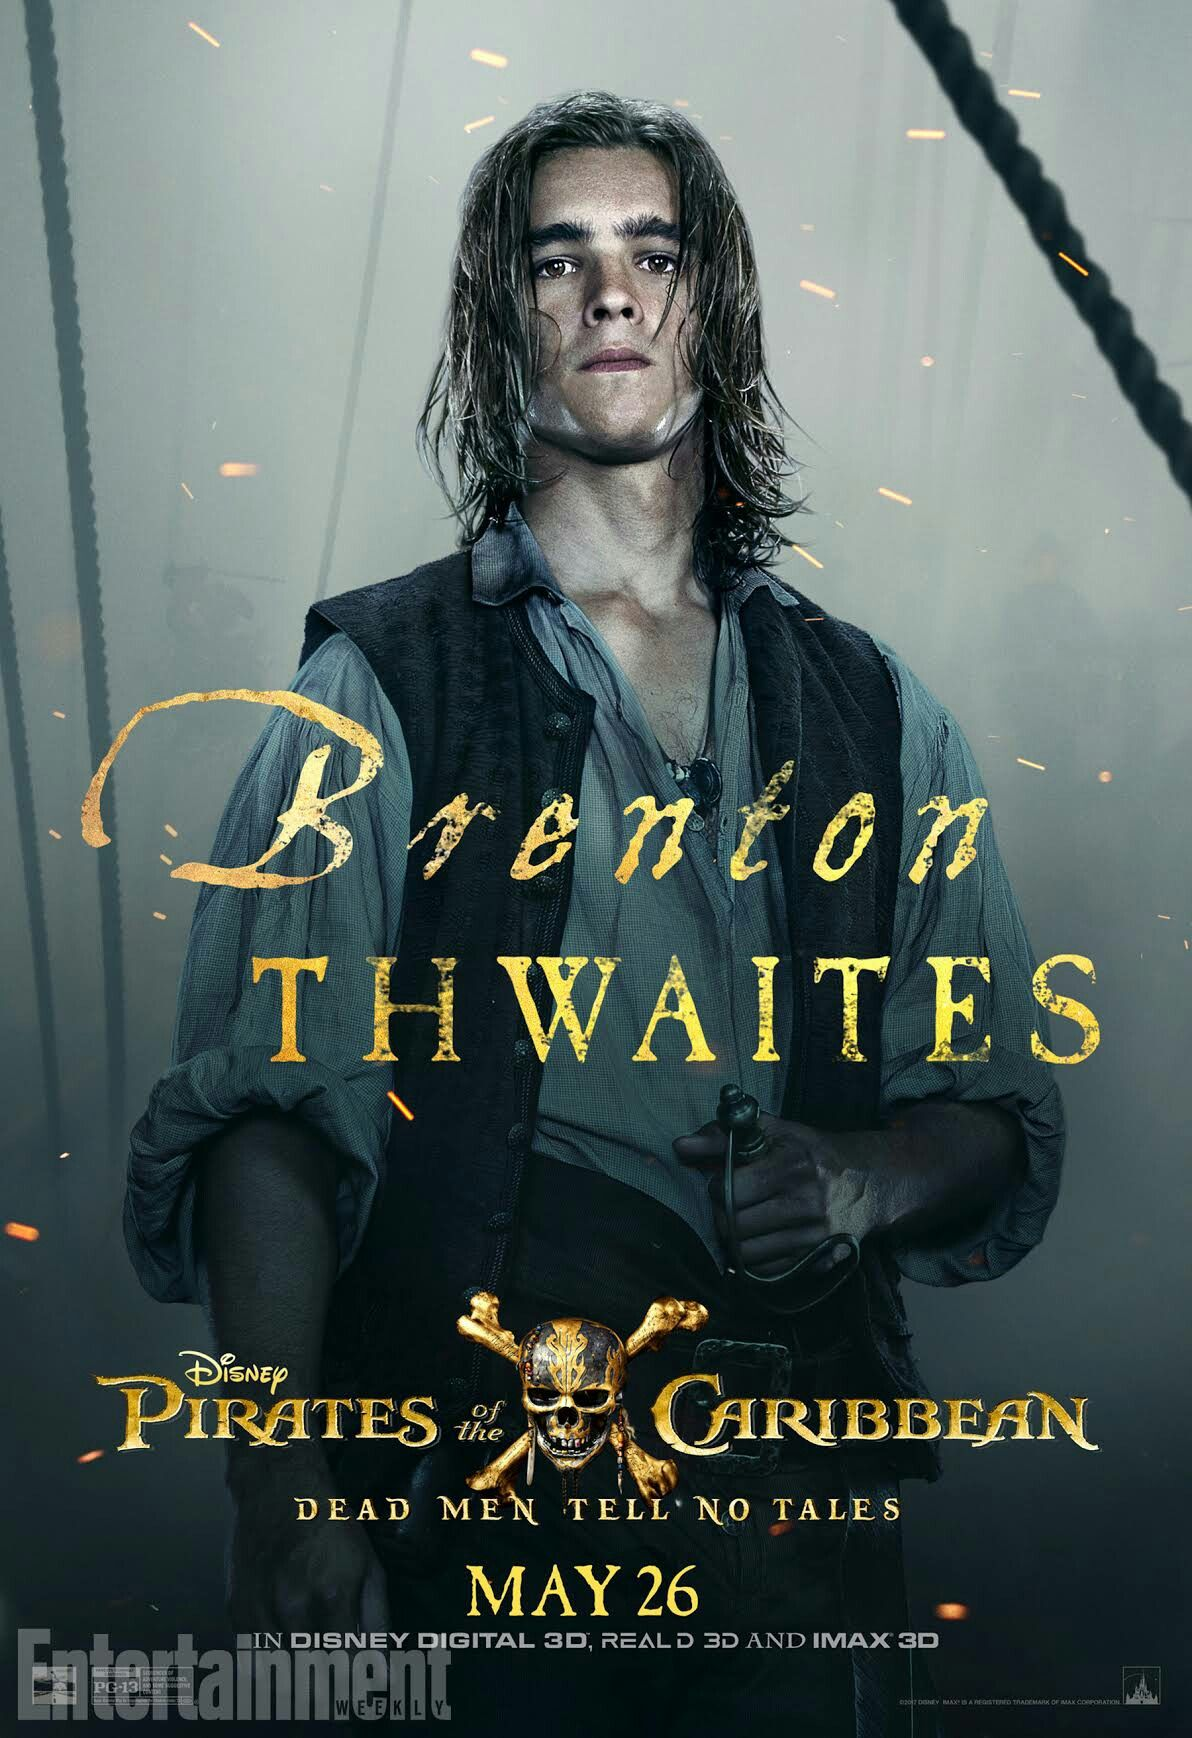 Brenton Thwaites as Henry Turner in Pirates of the Caribbean: Dead Men Tell no Tales! YESSSSS